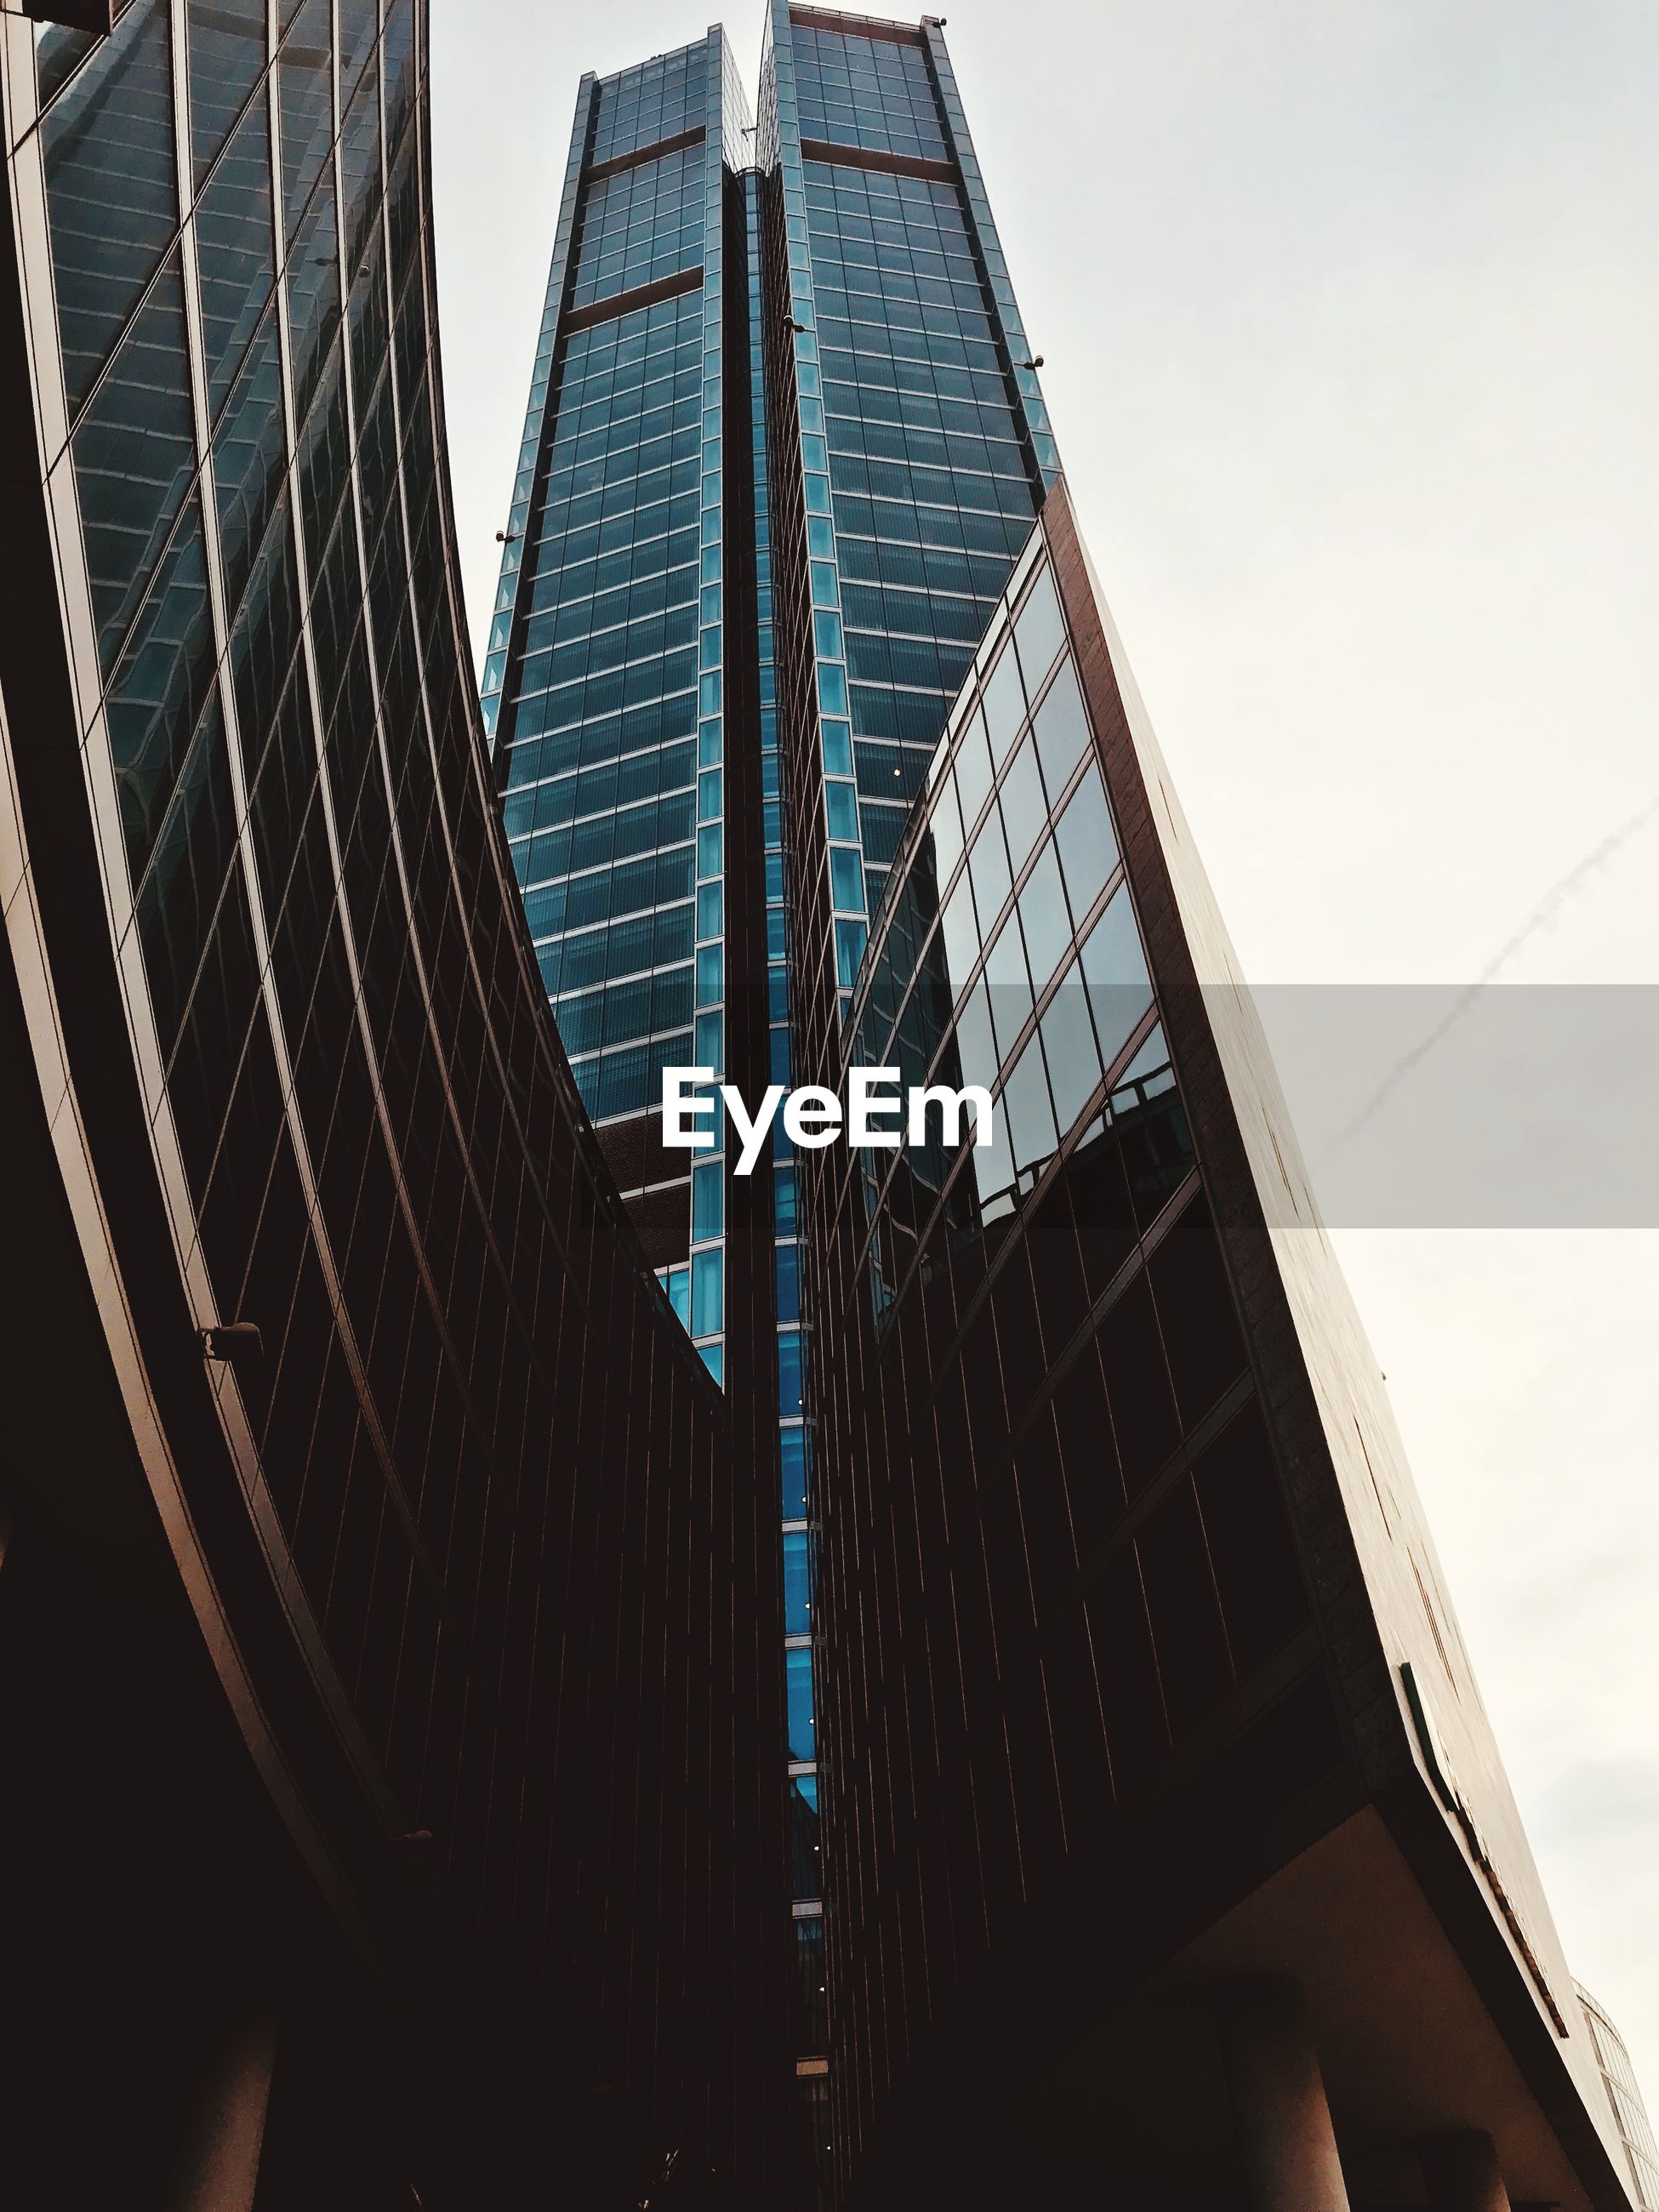 built structure, architecture, building exterior, city, building, office building exterior, low angle view, modern, sky, office, skyscraper, tall - high, no people, glass - material, nature, reflection, day, tower, outdoors, travel destinations, financial district